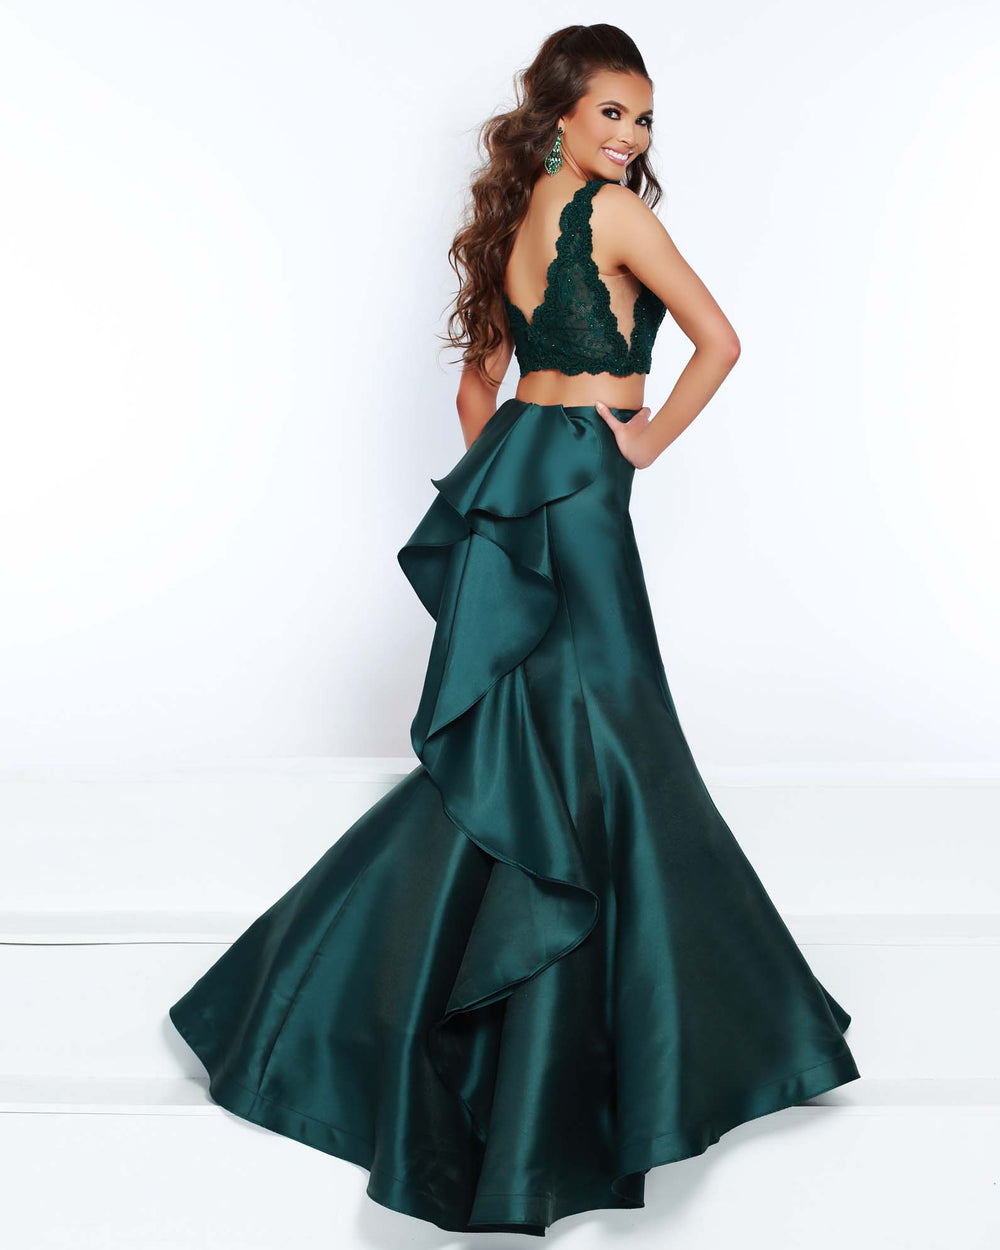 2Cute 91547 Two Pieces Long Mermaid Prom Dress